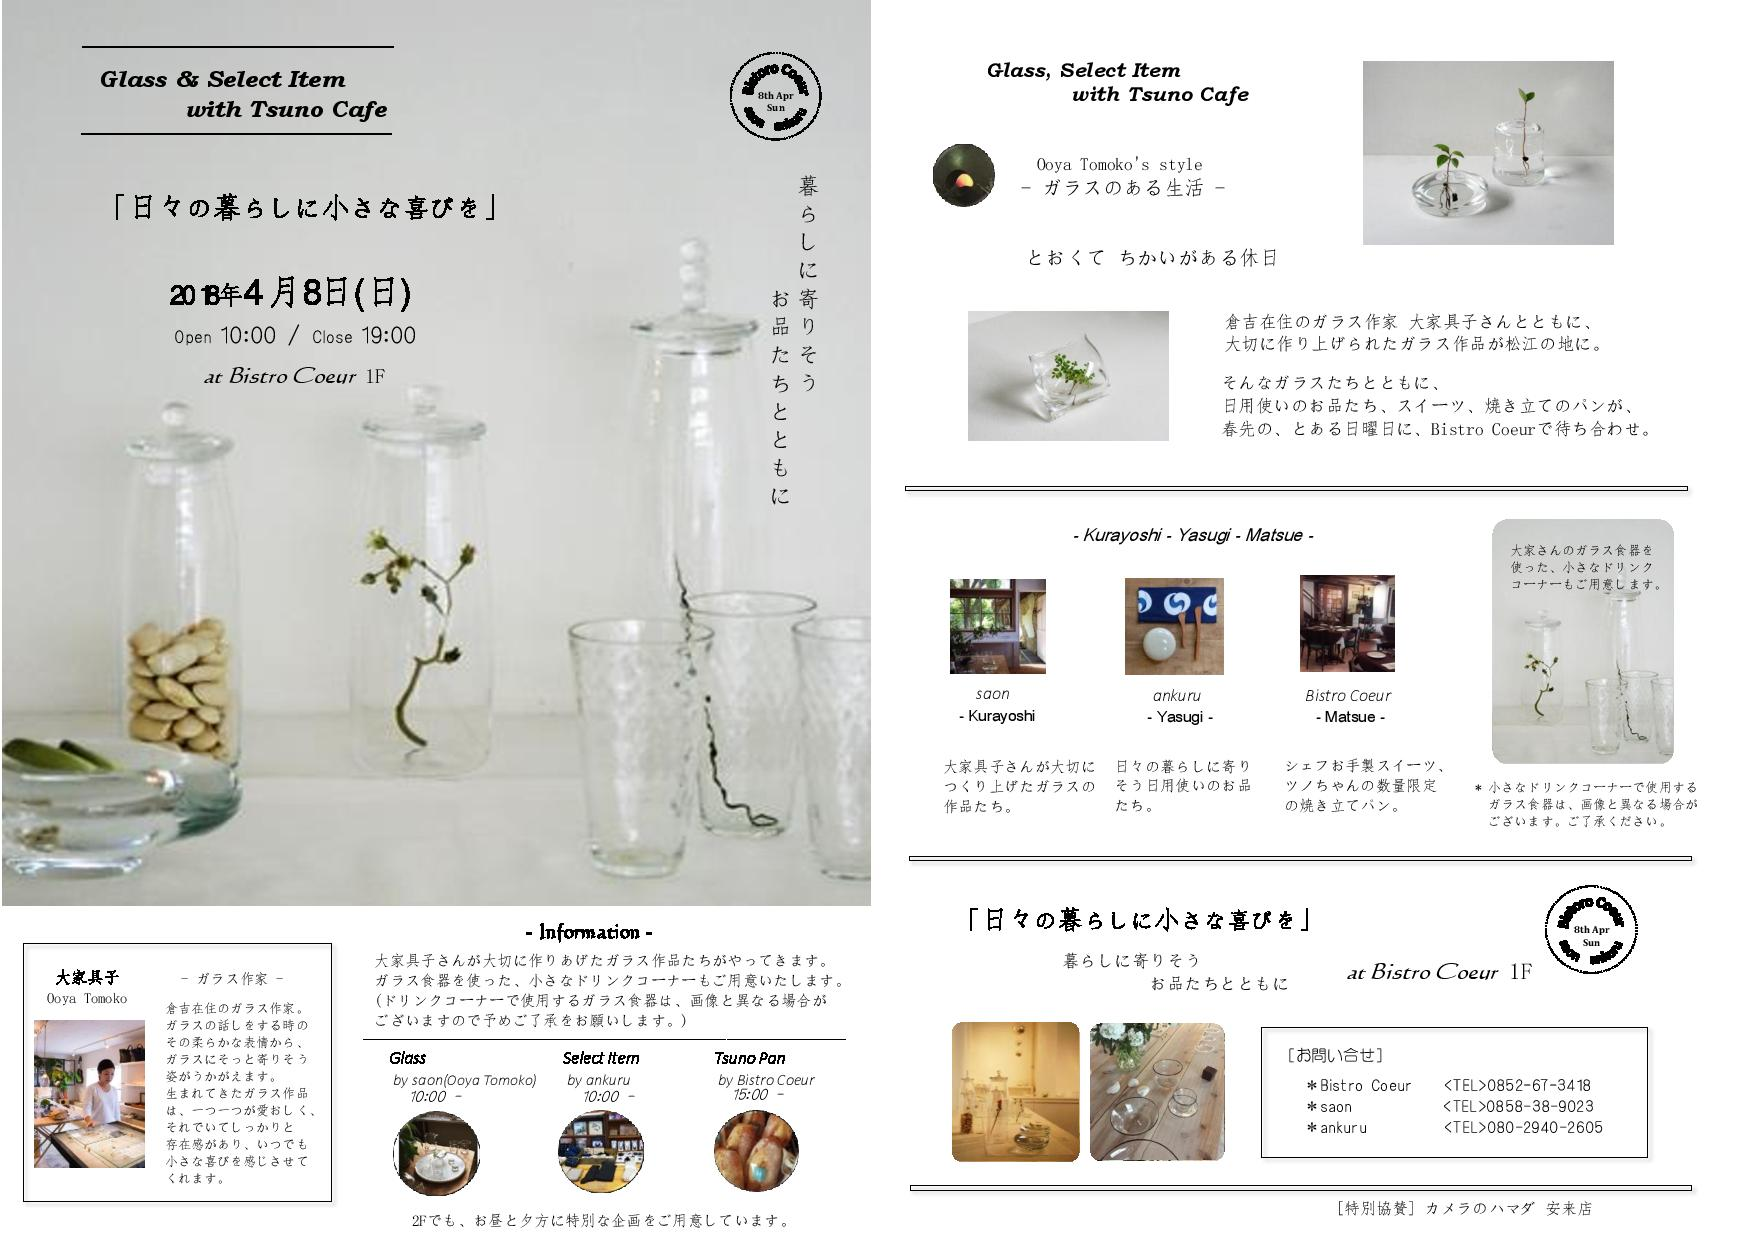 20180408_Glass 20 26 20Select 20Item 20 26 20Cafe-page-001